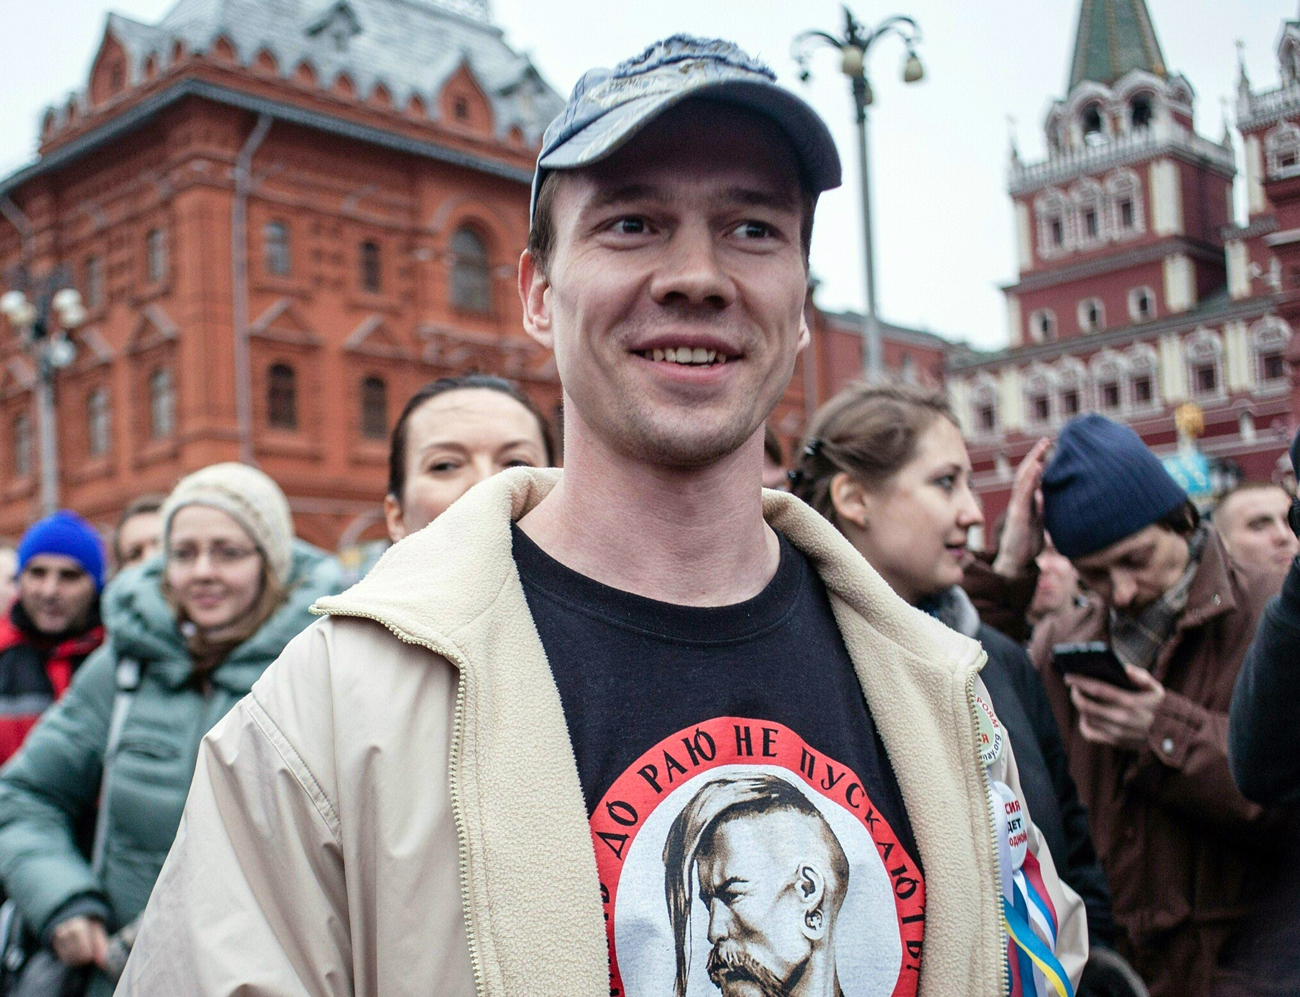 A picture taken on April 6, 2014 at Manezhnaya Square shows Ildar Dadin participating in a rally in support of anti-government activists detained in Moscow's Bolotnaya Square on May 6, 2012.